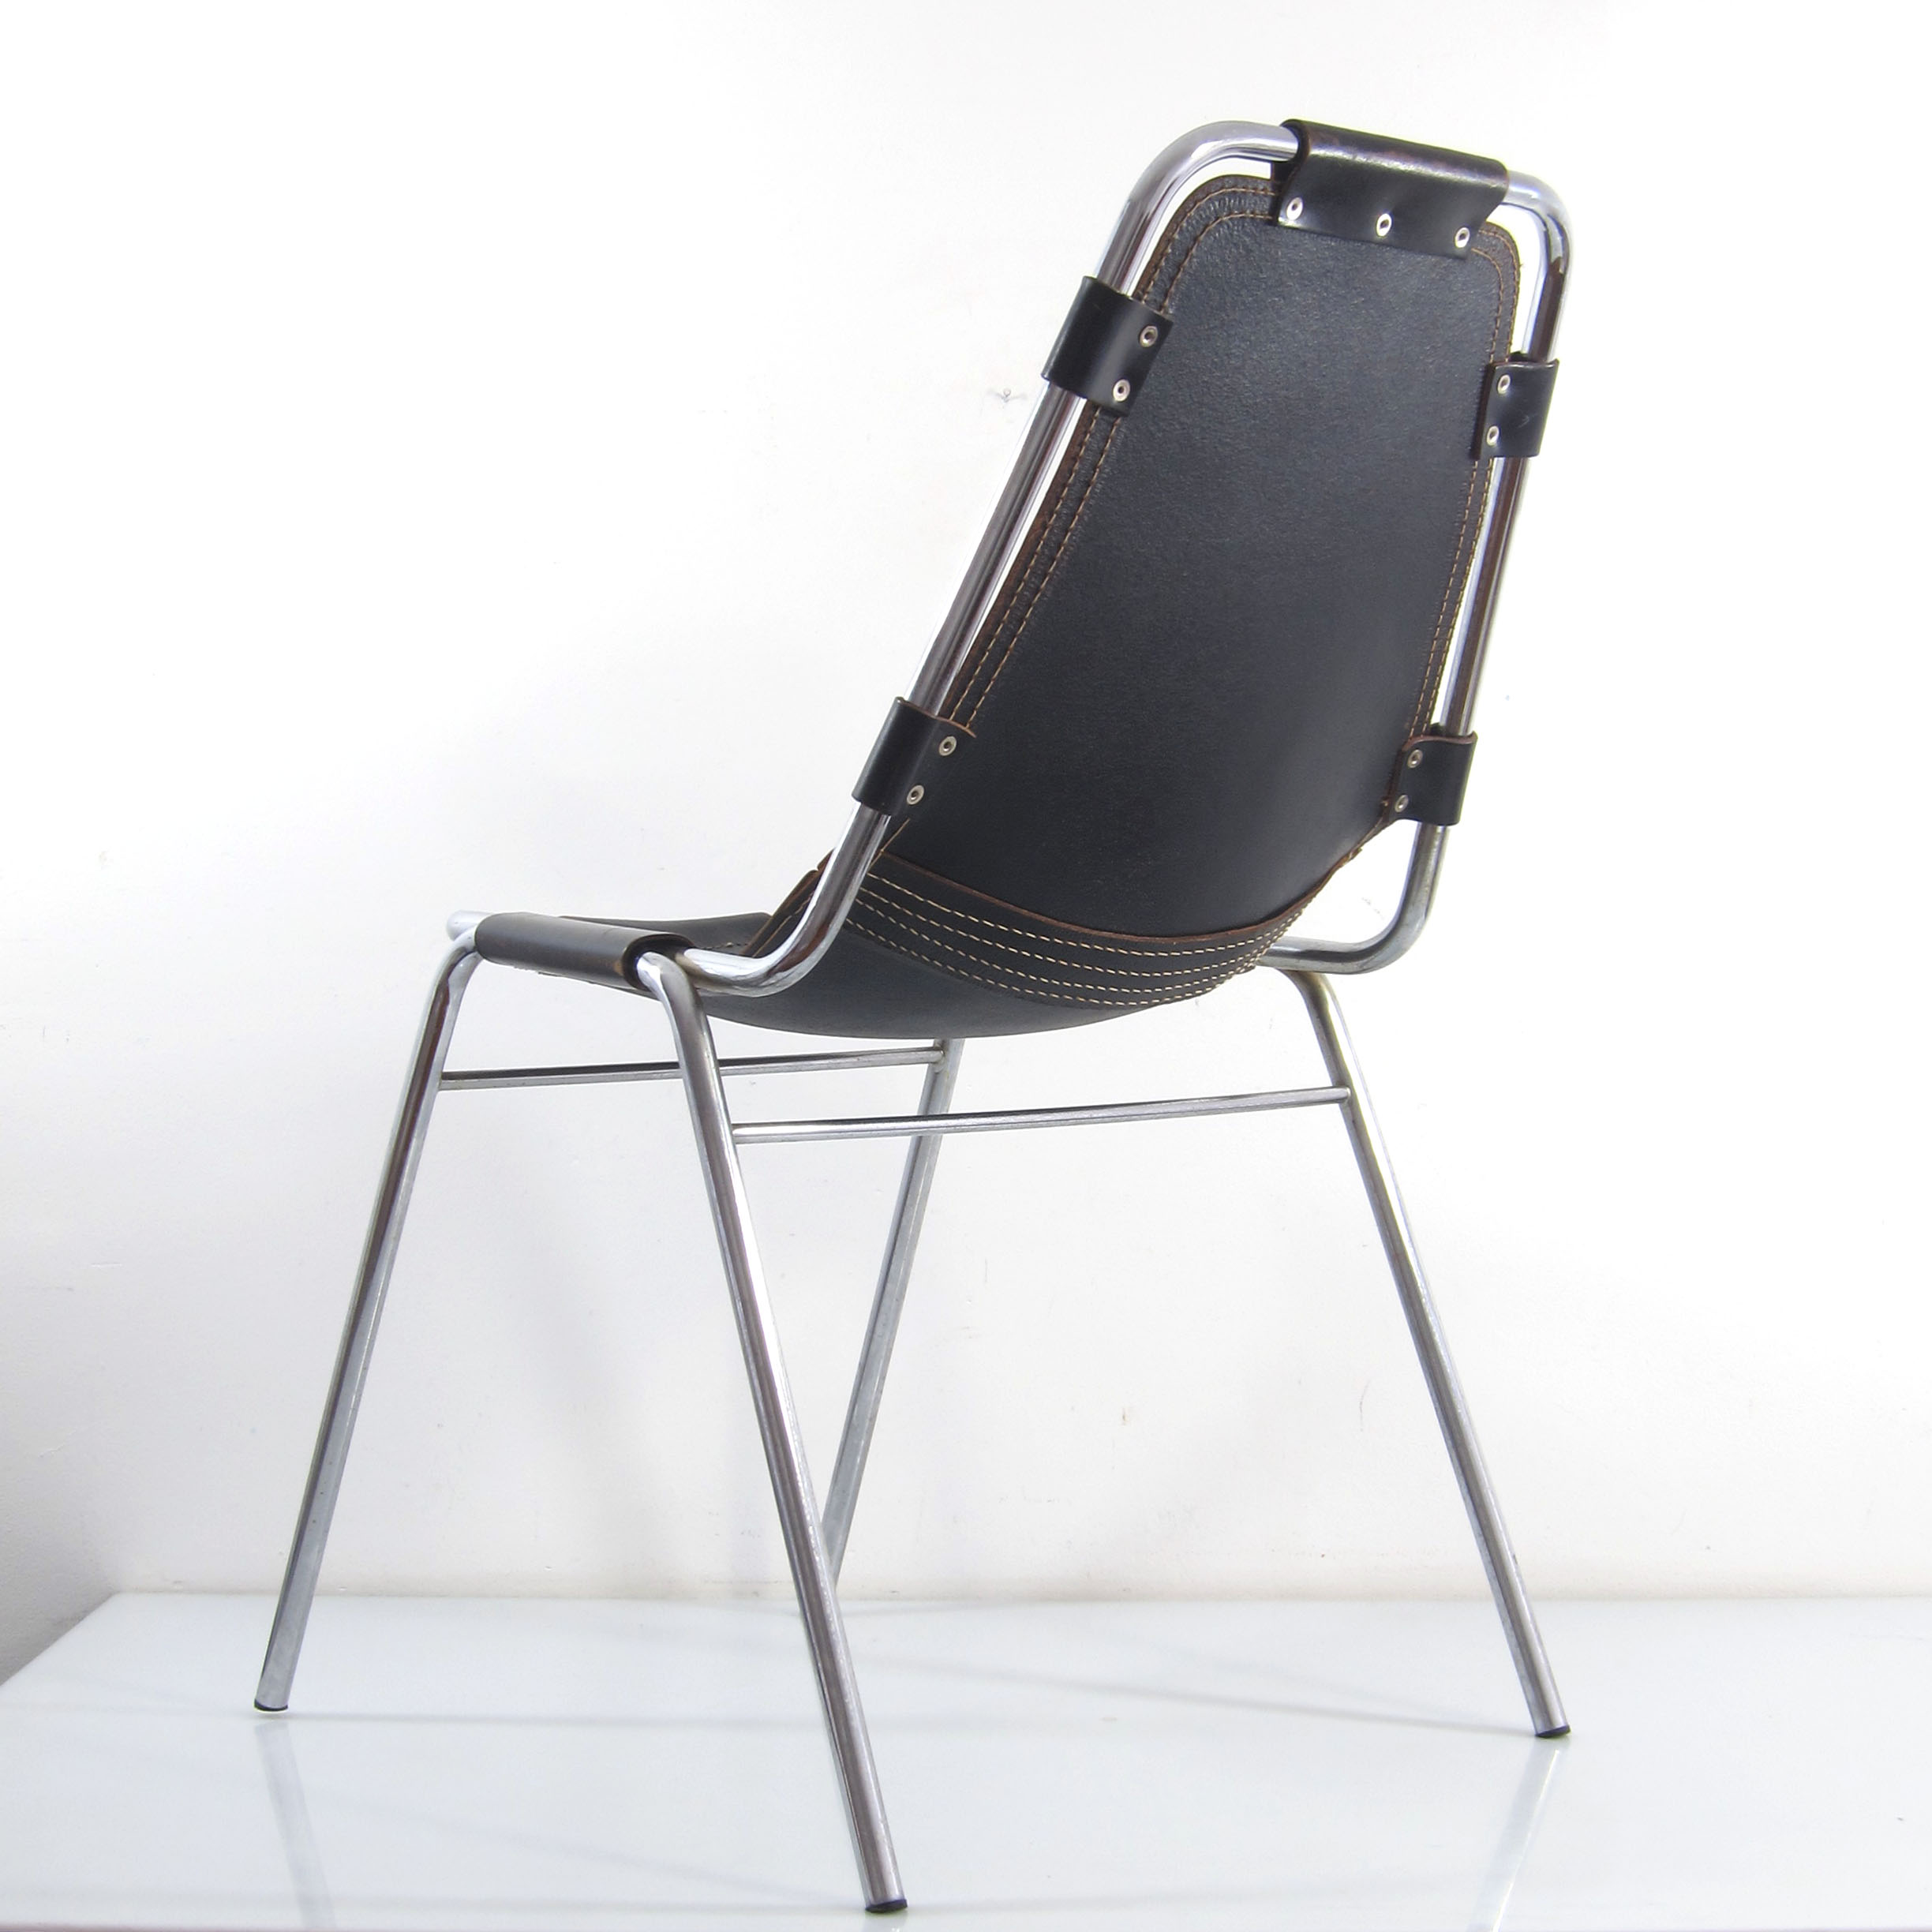 Charlotte Perriand Les Arcs chair - fifties, sixties, retro, eames, rietveld, cadovius, le corbusier, braakman, jean prouve, jacobsen,wegner